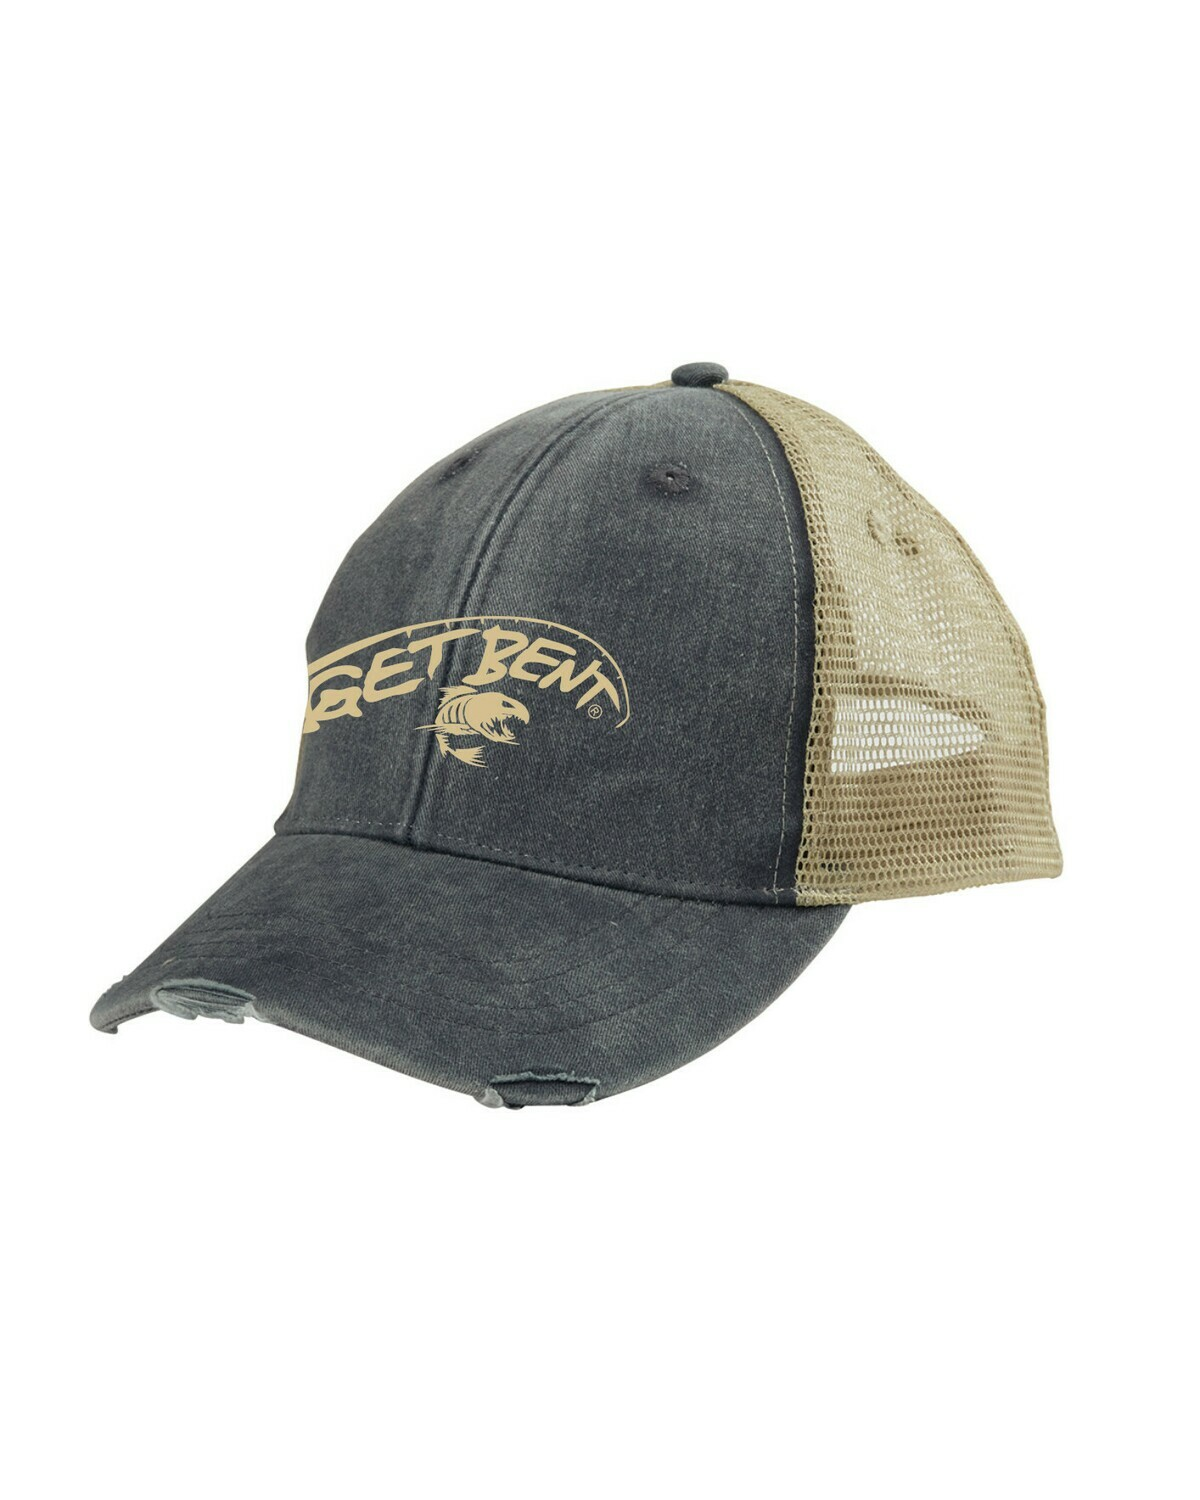 'Get Bent' Adams Hat - Black/Khaki